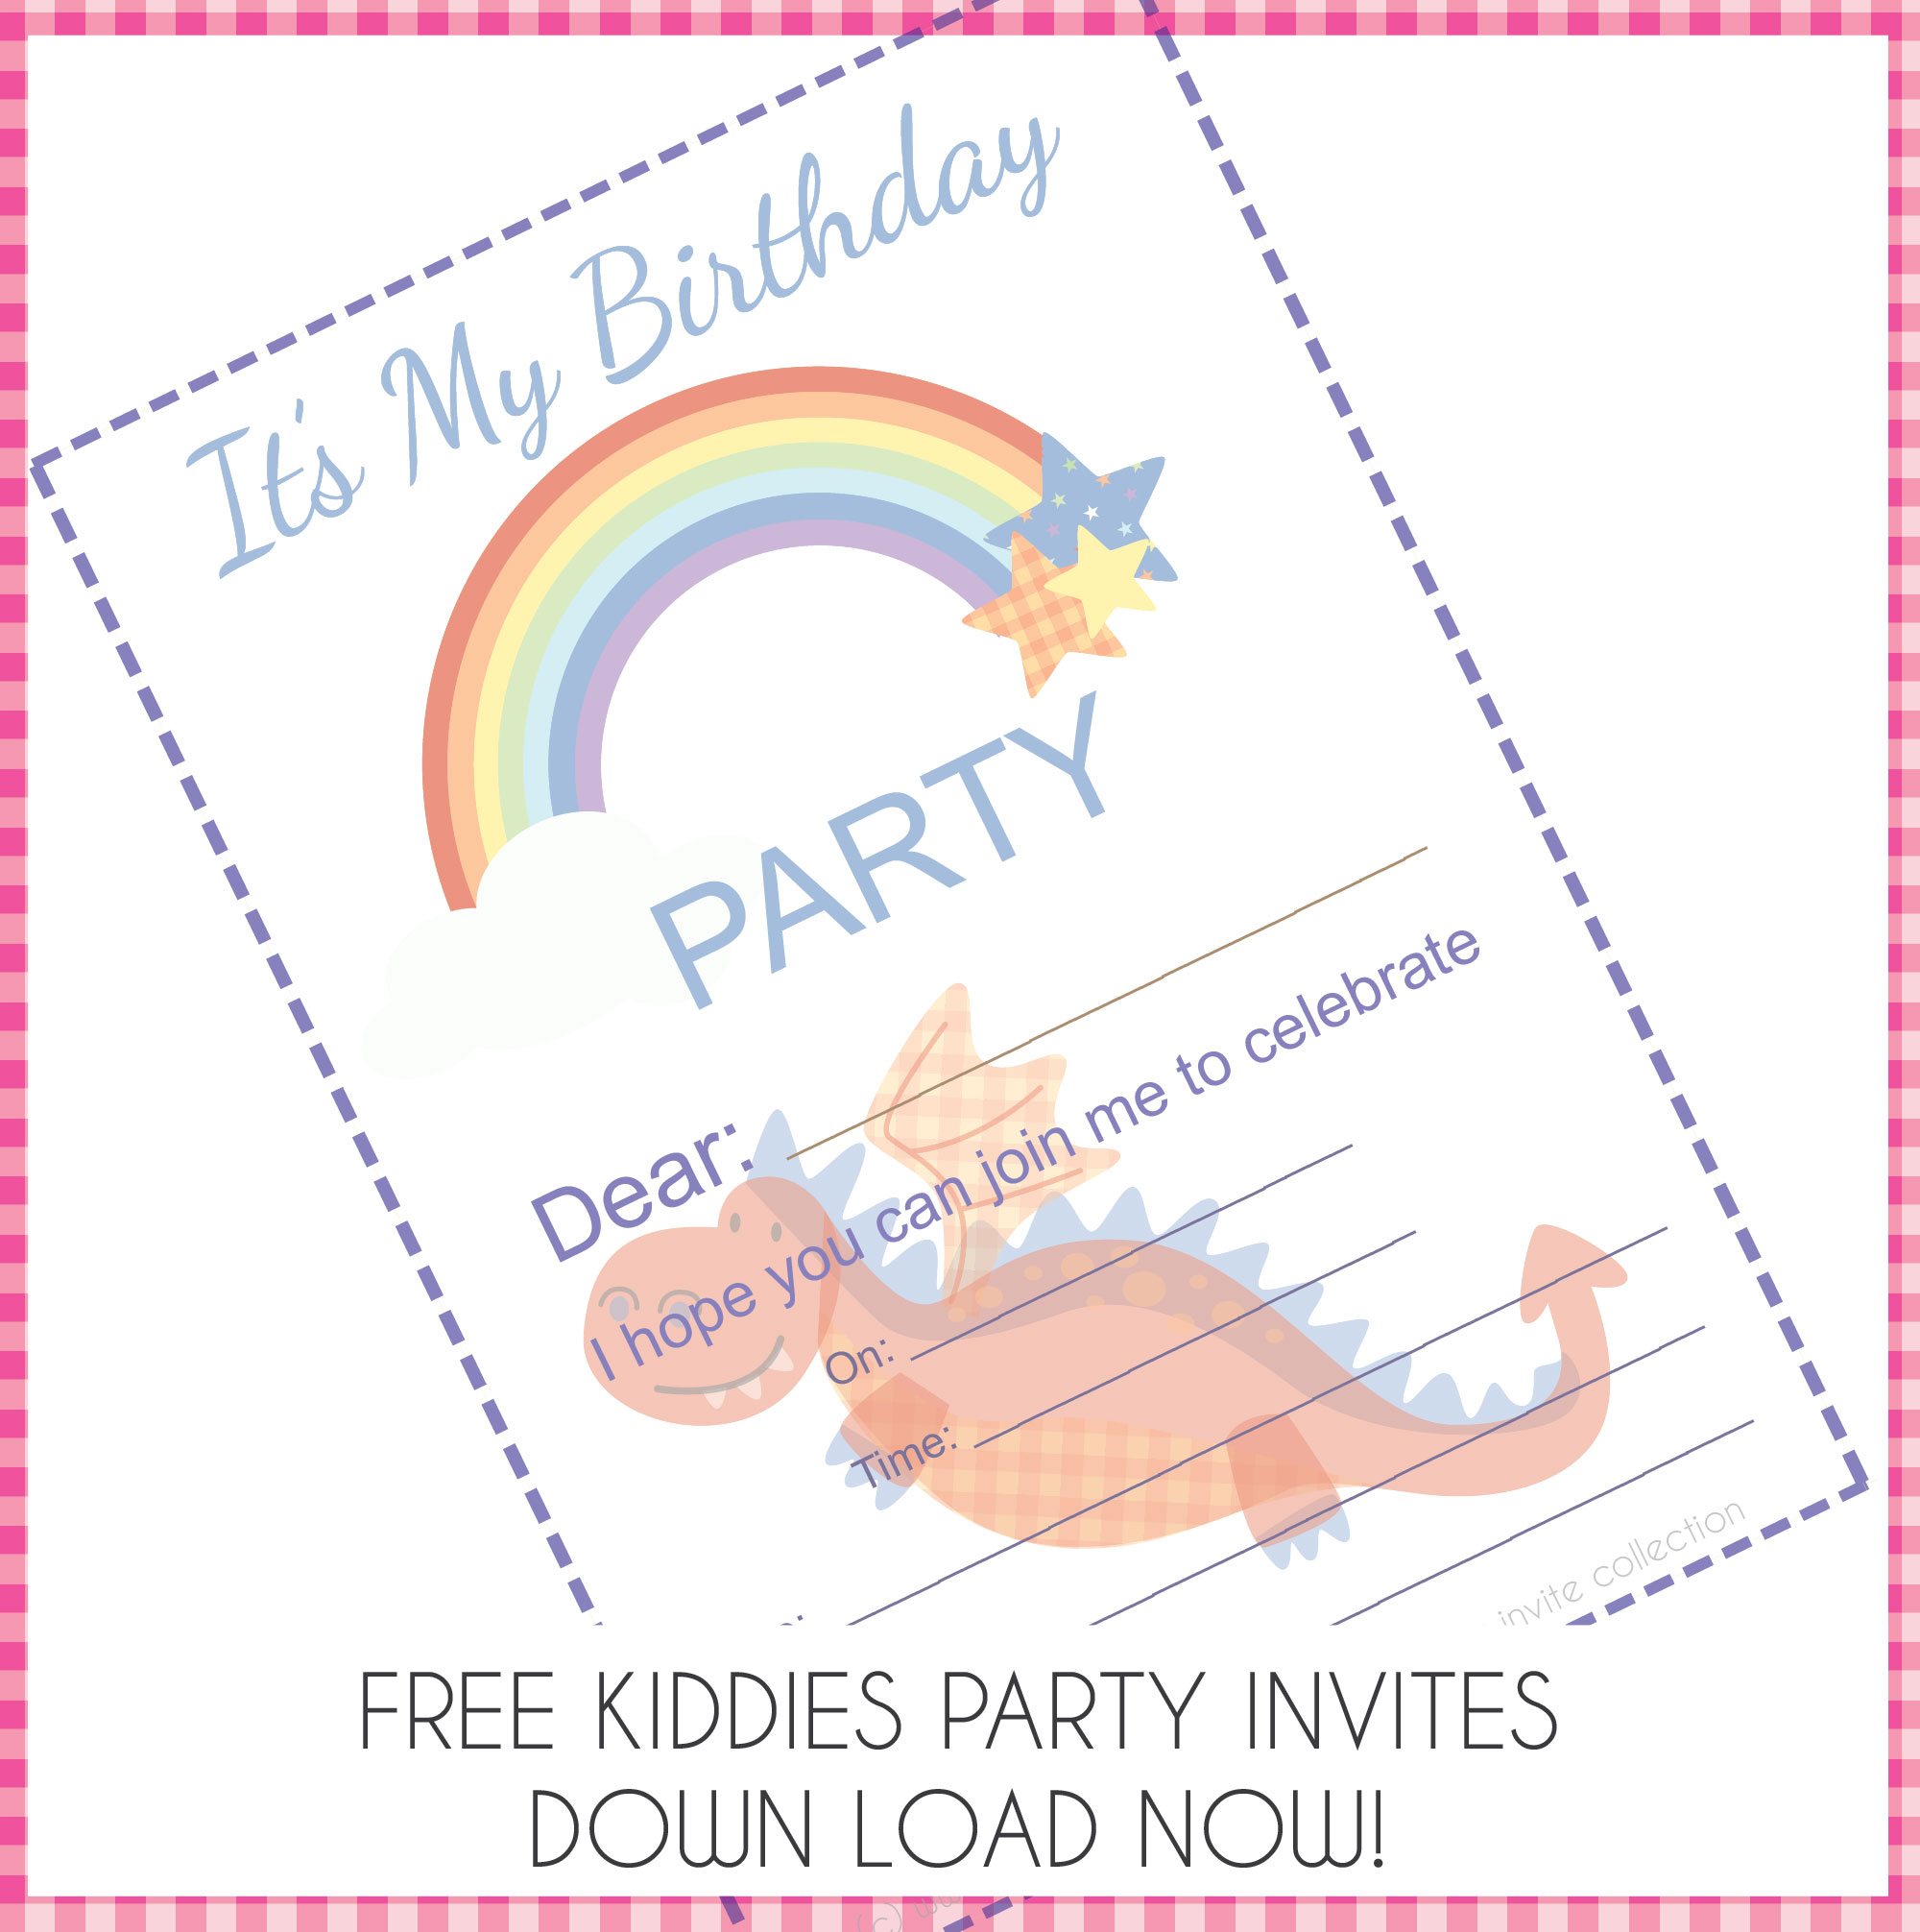 Enchanted Free Downloadable Party Invites